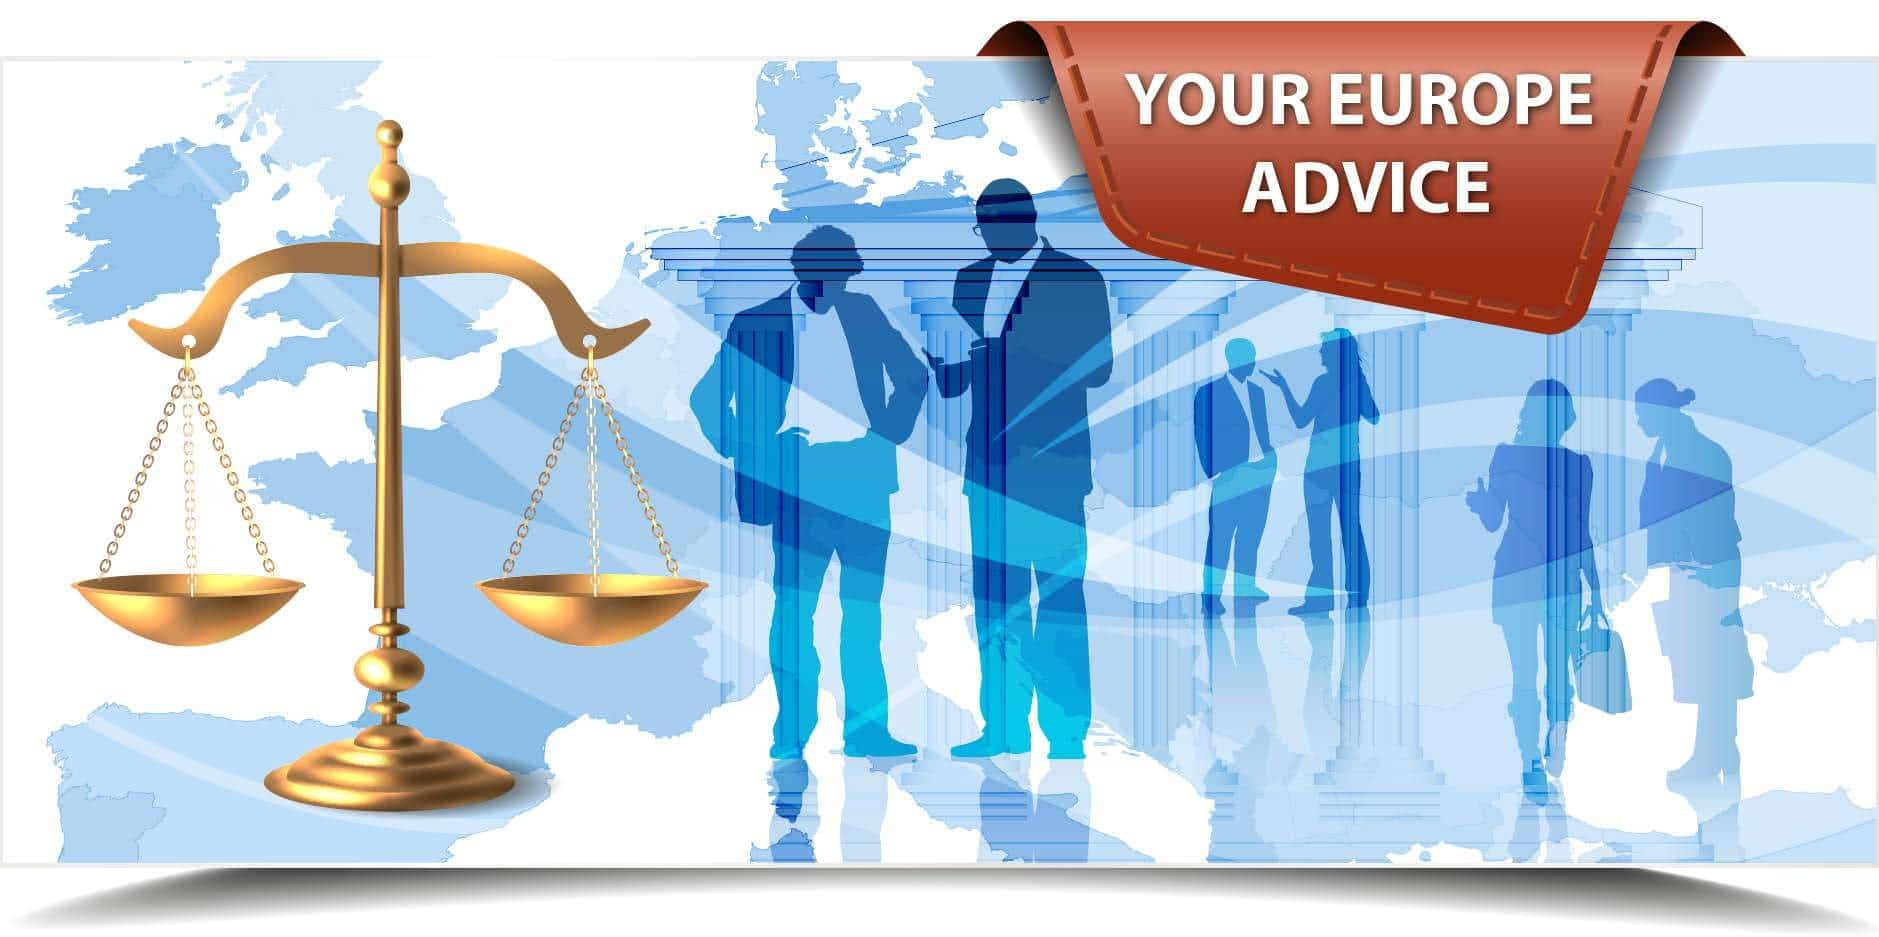 Your Europe Advice Witnesses A 46% Increase Of Enquiries In 2019, With 'Social Security' Being Most Common Legal Topic